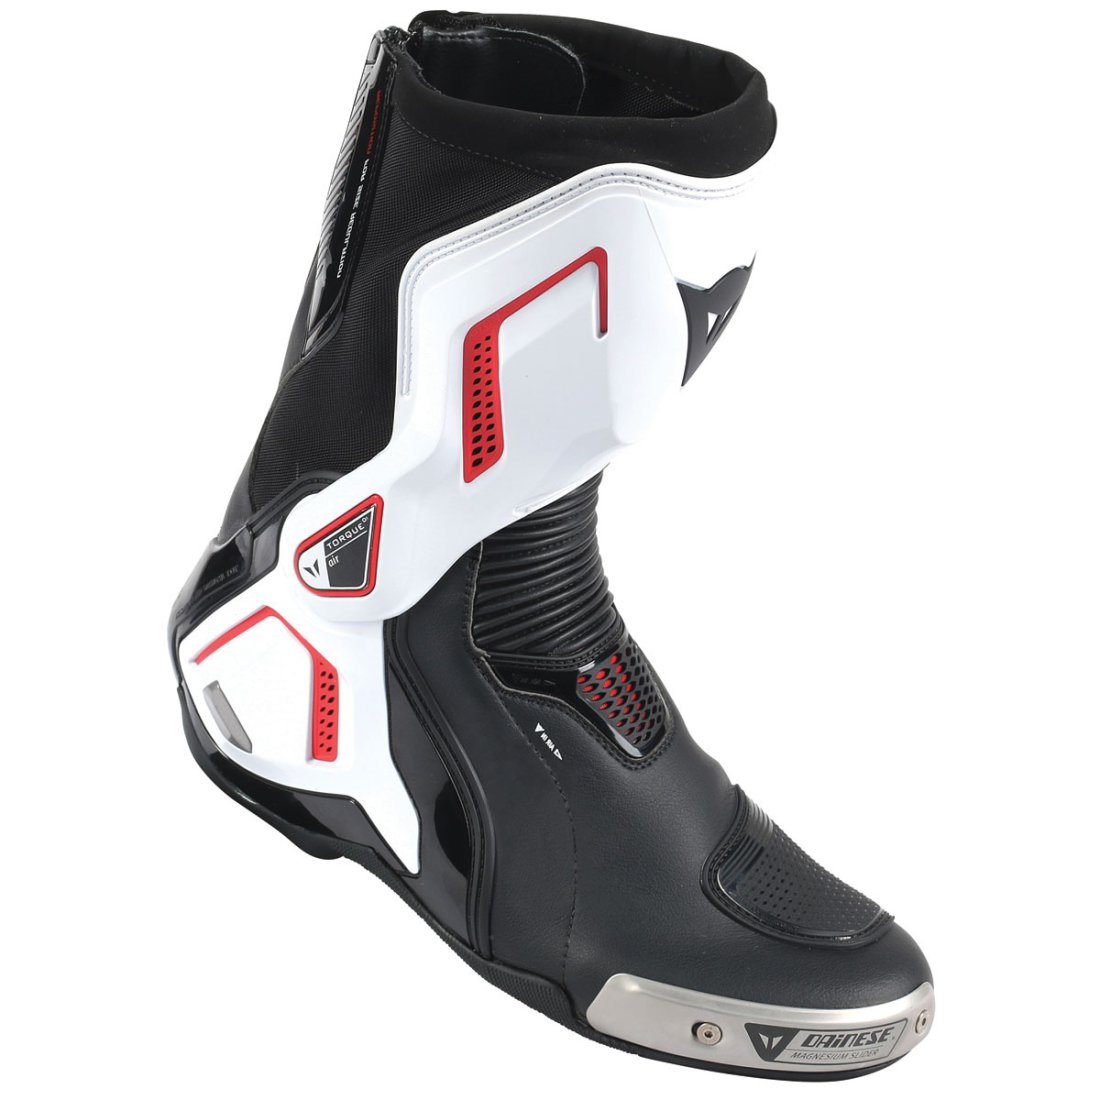 bottes dainese torque d1 out air black white lava red. Black Bedroom Furniture Sets. Home Design Ideas